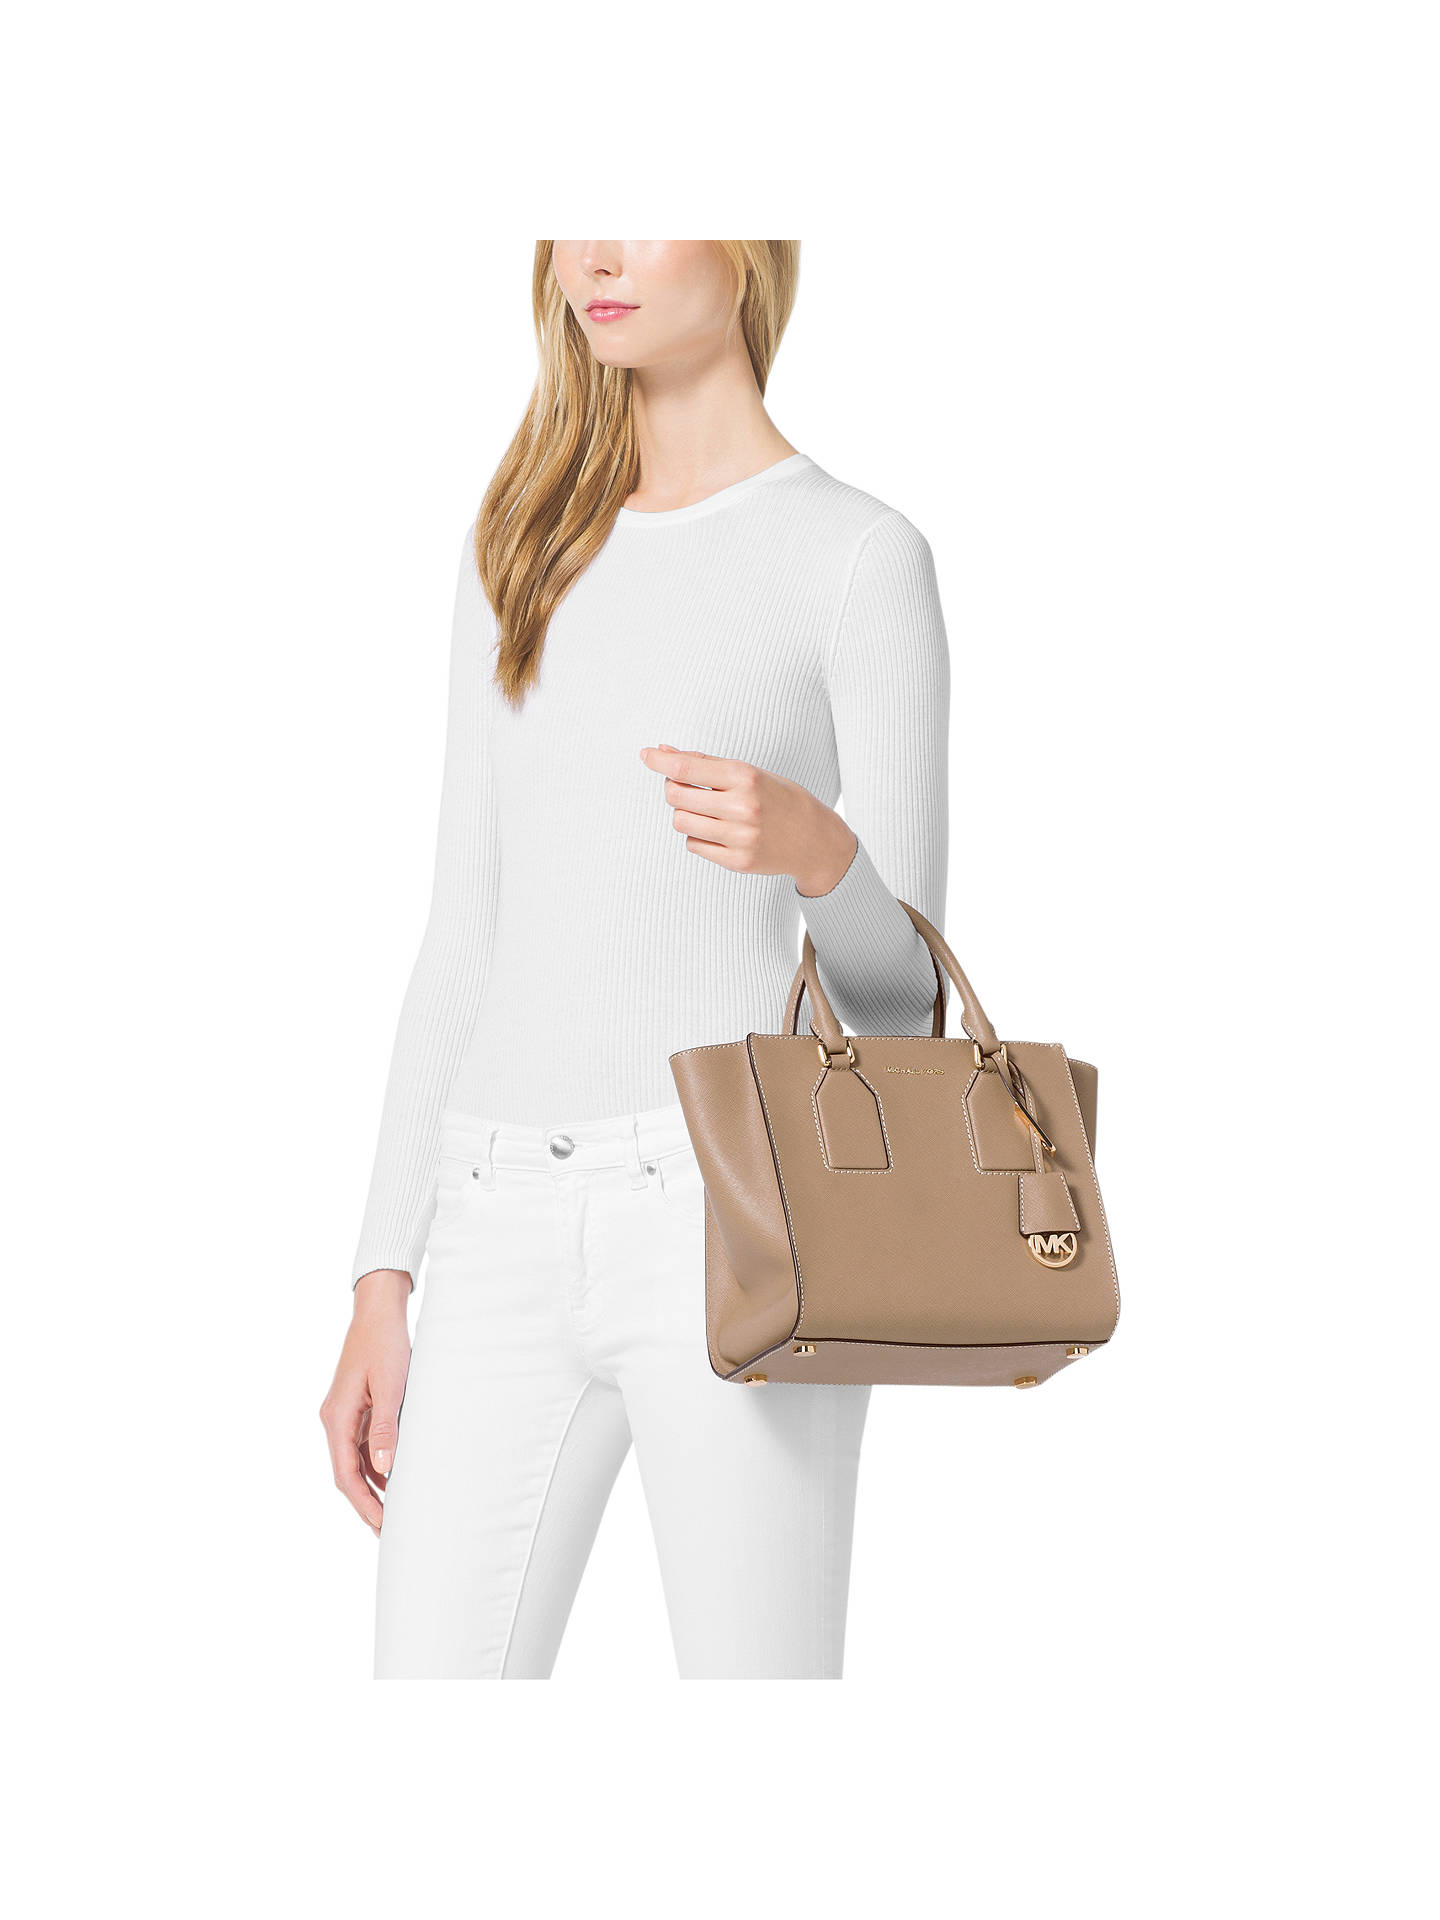 6615afc45066 ... Buy MICHAEL Michael Kors Selby Medium Leather Satchel, Khaki Online at  johnlewis.com